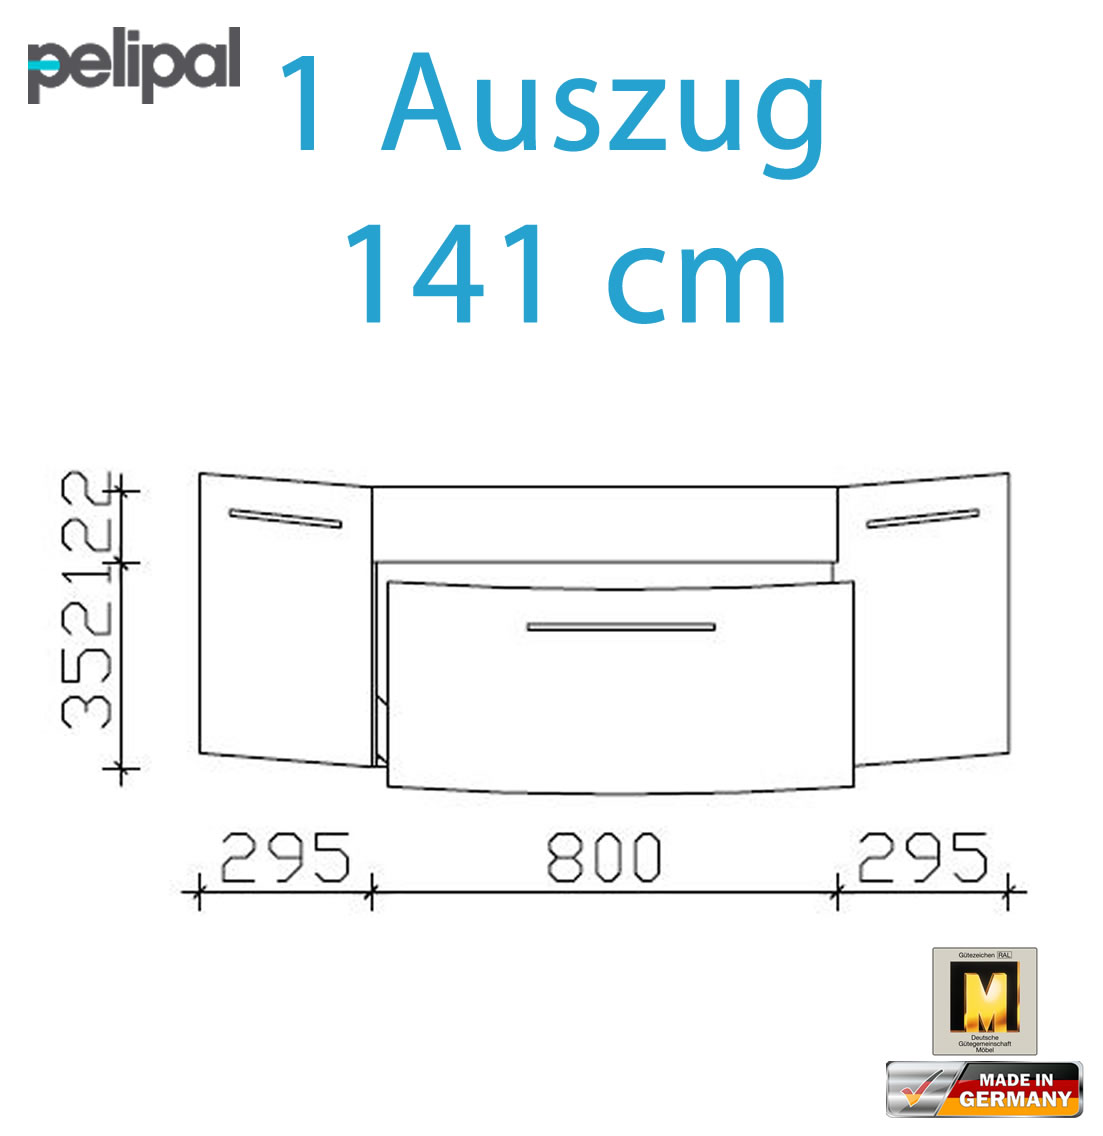 pelipal cassca waschtischunterschrank set 141 cm 1 auszug impuls home. Black Bedroom Furniture Sets. Home Design Ideas